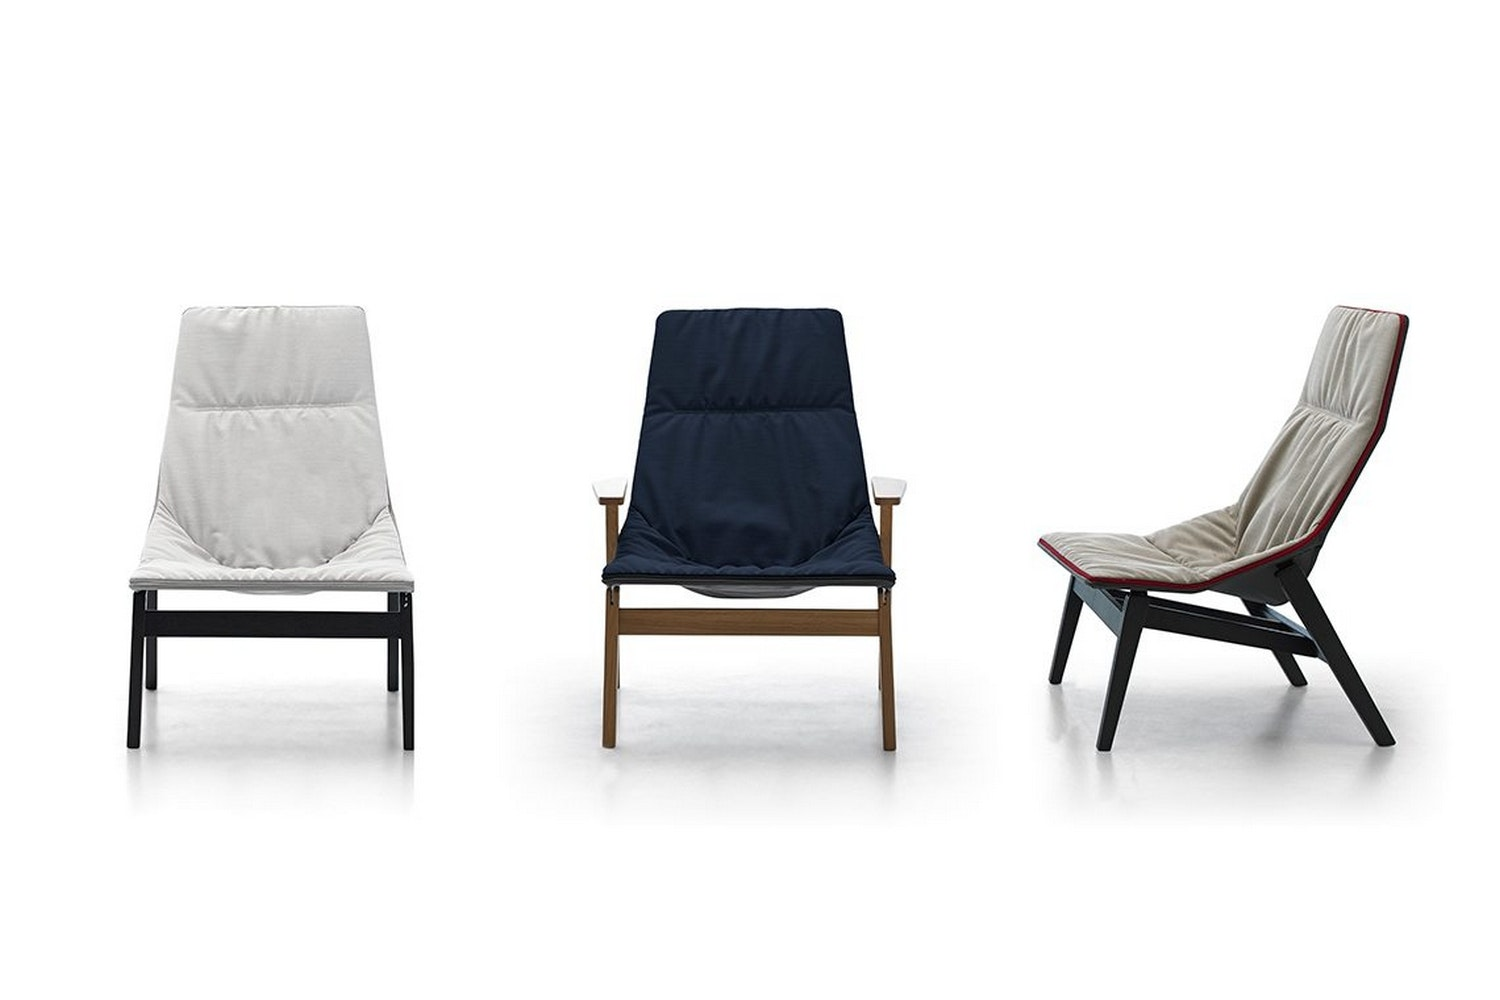 Ace armchair by Jean-Marie Massaud for Viccarbe